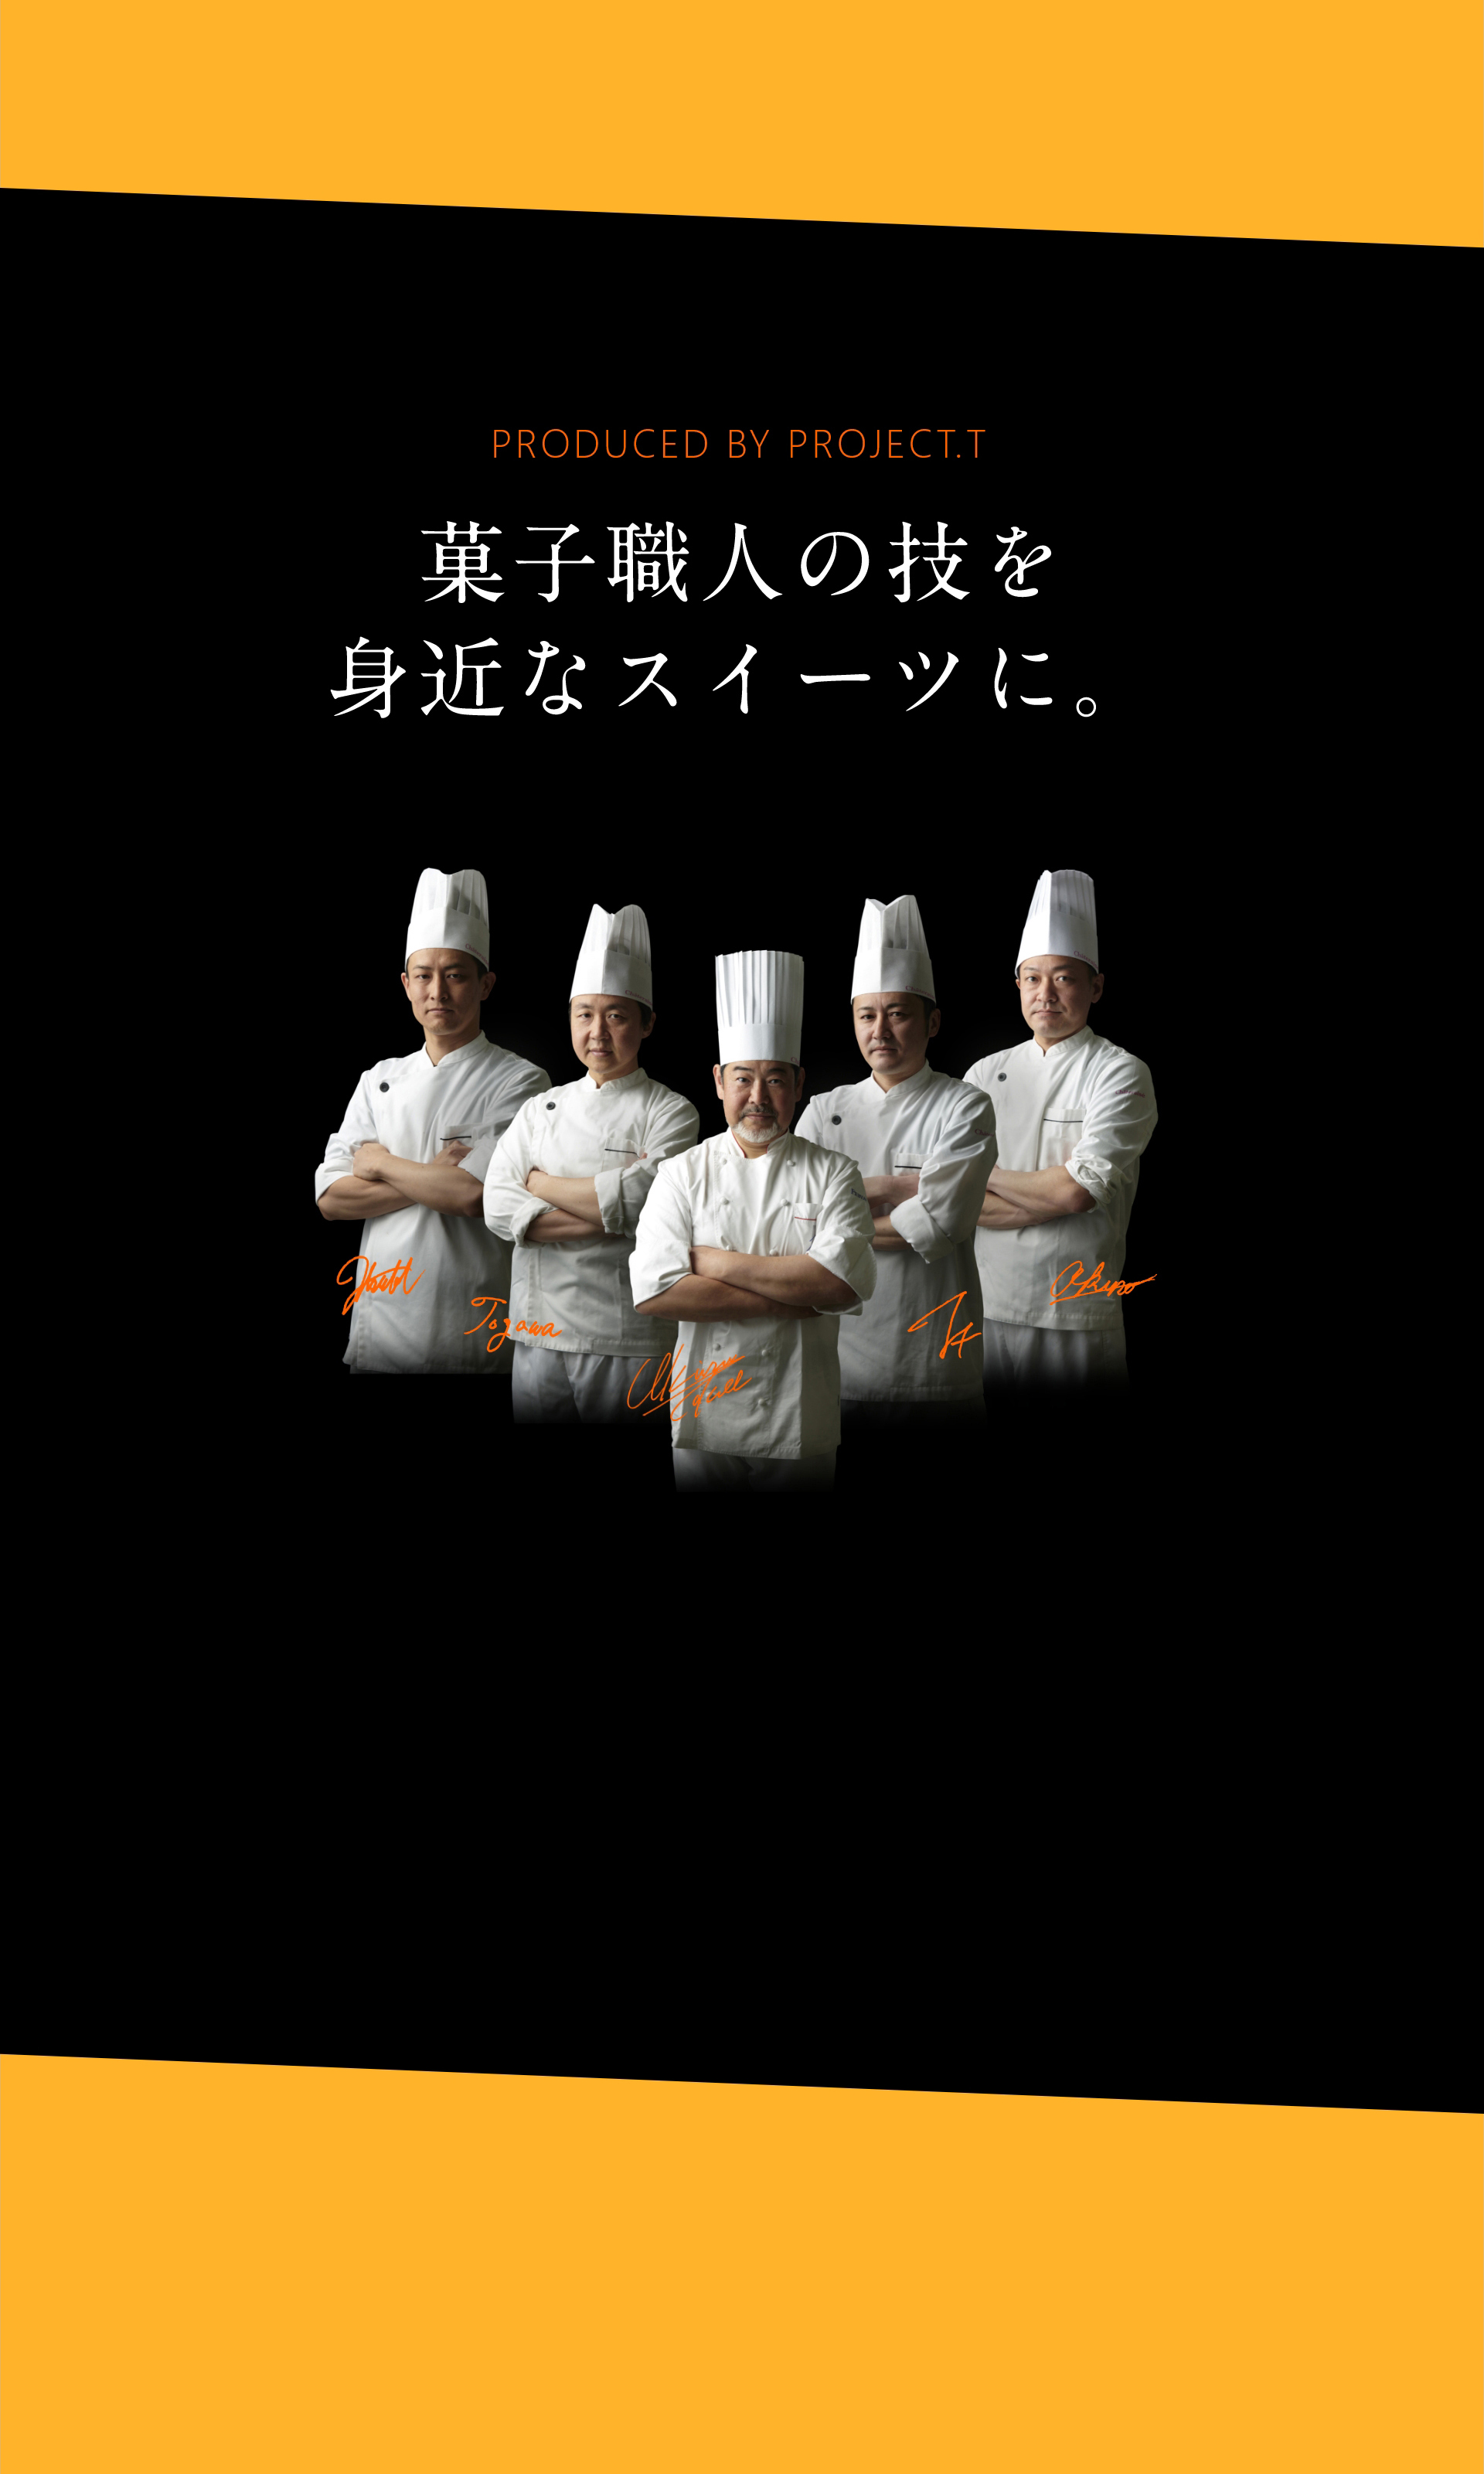 Produced By Project.T 菓子職人の技を身近なスイーツに。